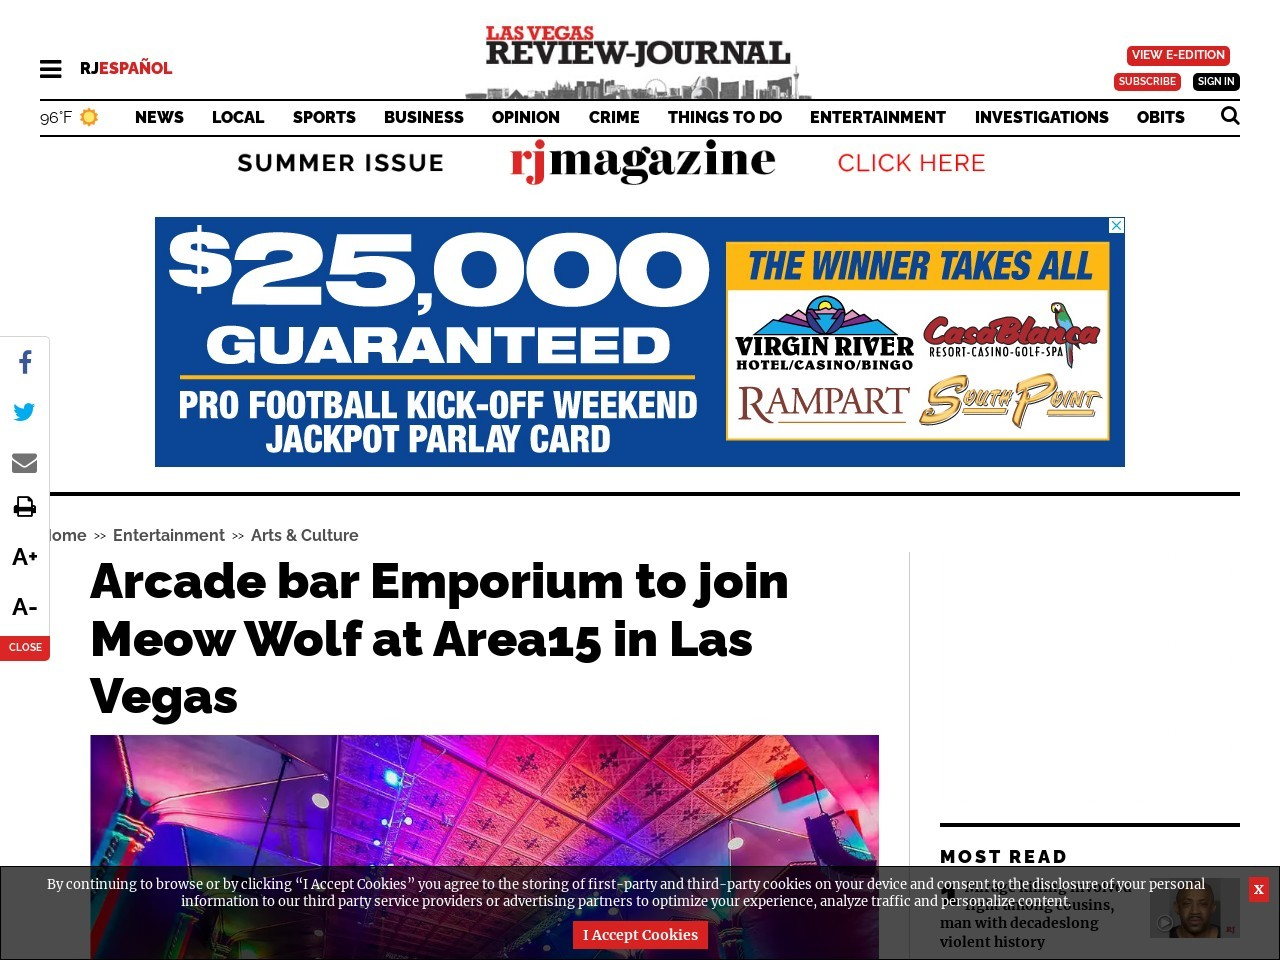 Arcade bar Emporium to join Meow Wolf at Area15 in Las Vegas